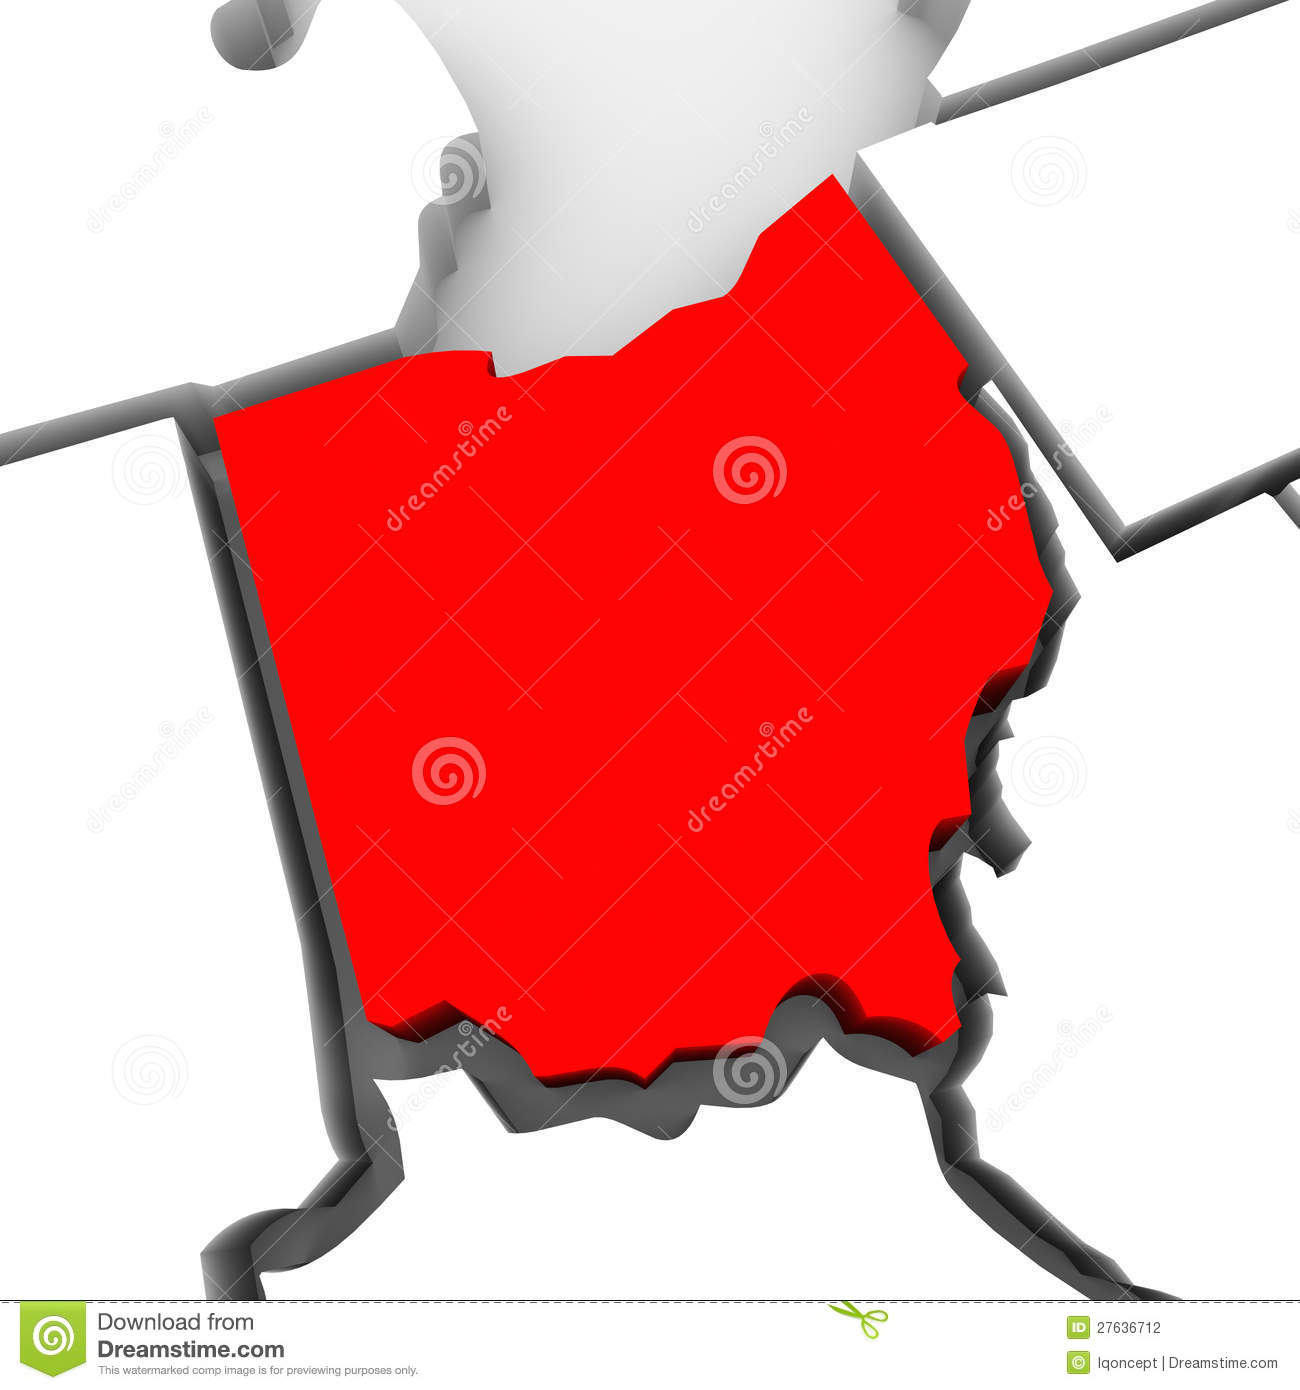 Red state map clipart jpg freeuse stock Ohio Red Abstract 3D State Map United States America Stock ... jpg freeuse stock